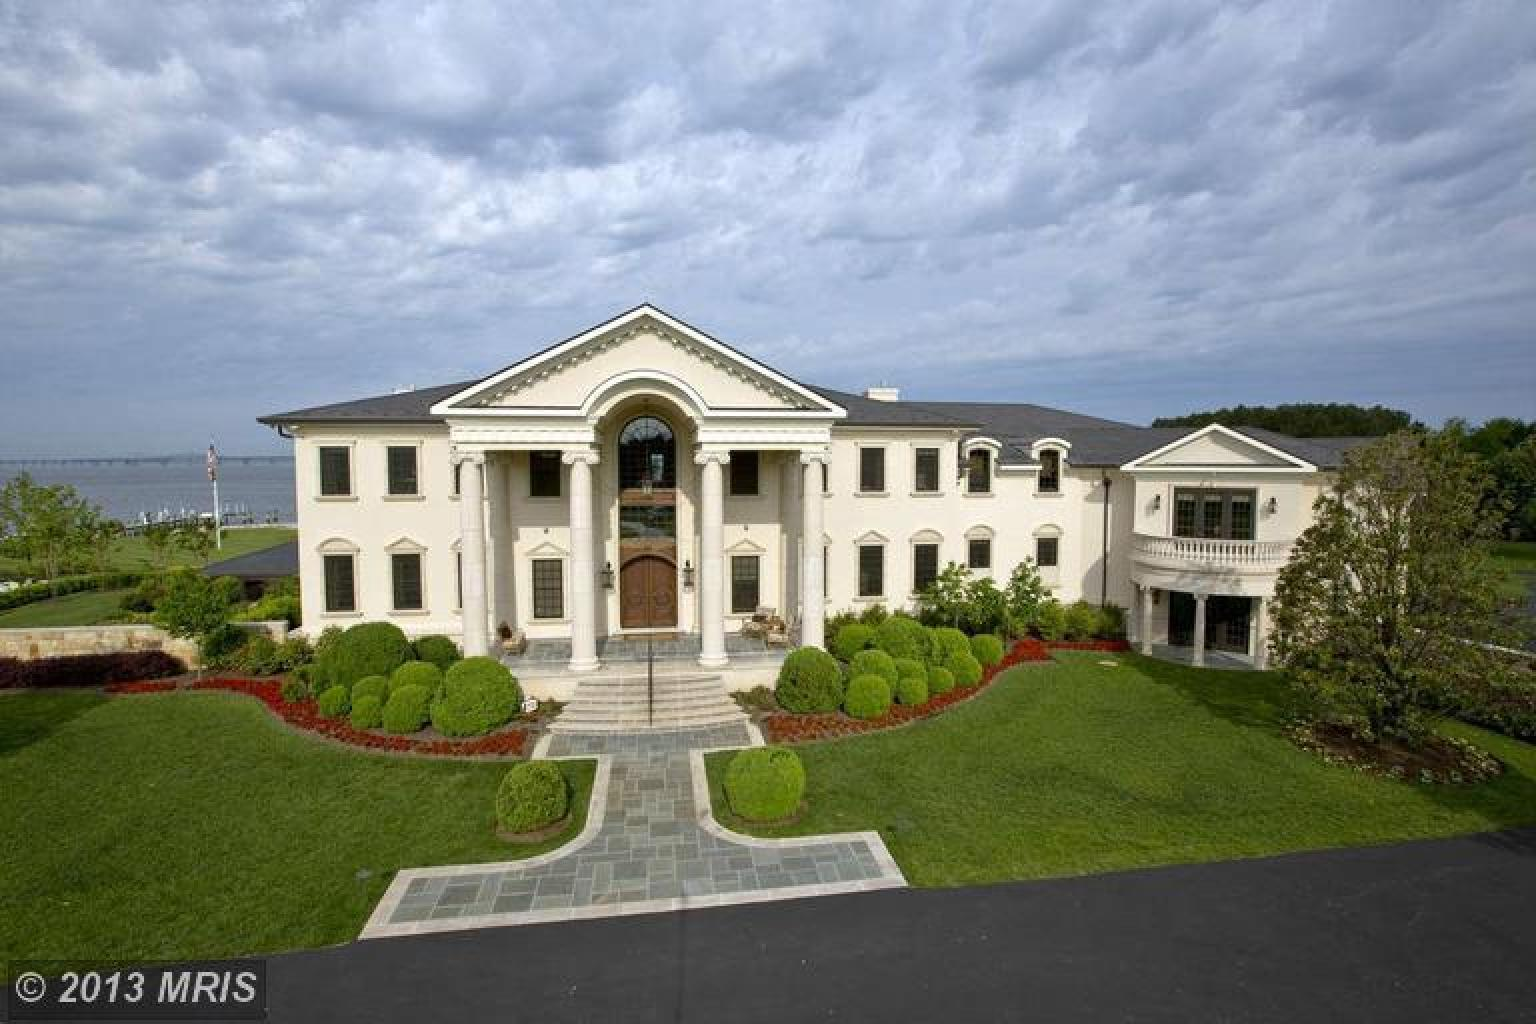 7 of the most expensive homes in and around washington dc worth 20 million or more photos huffpost